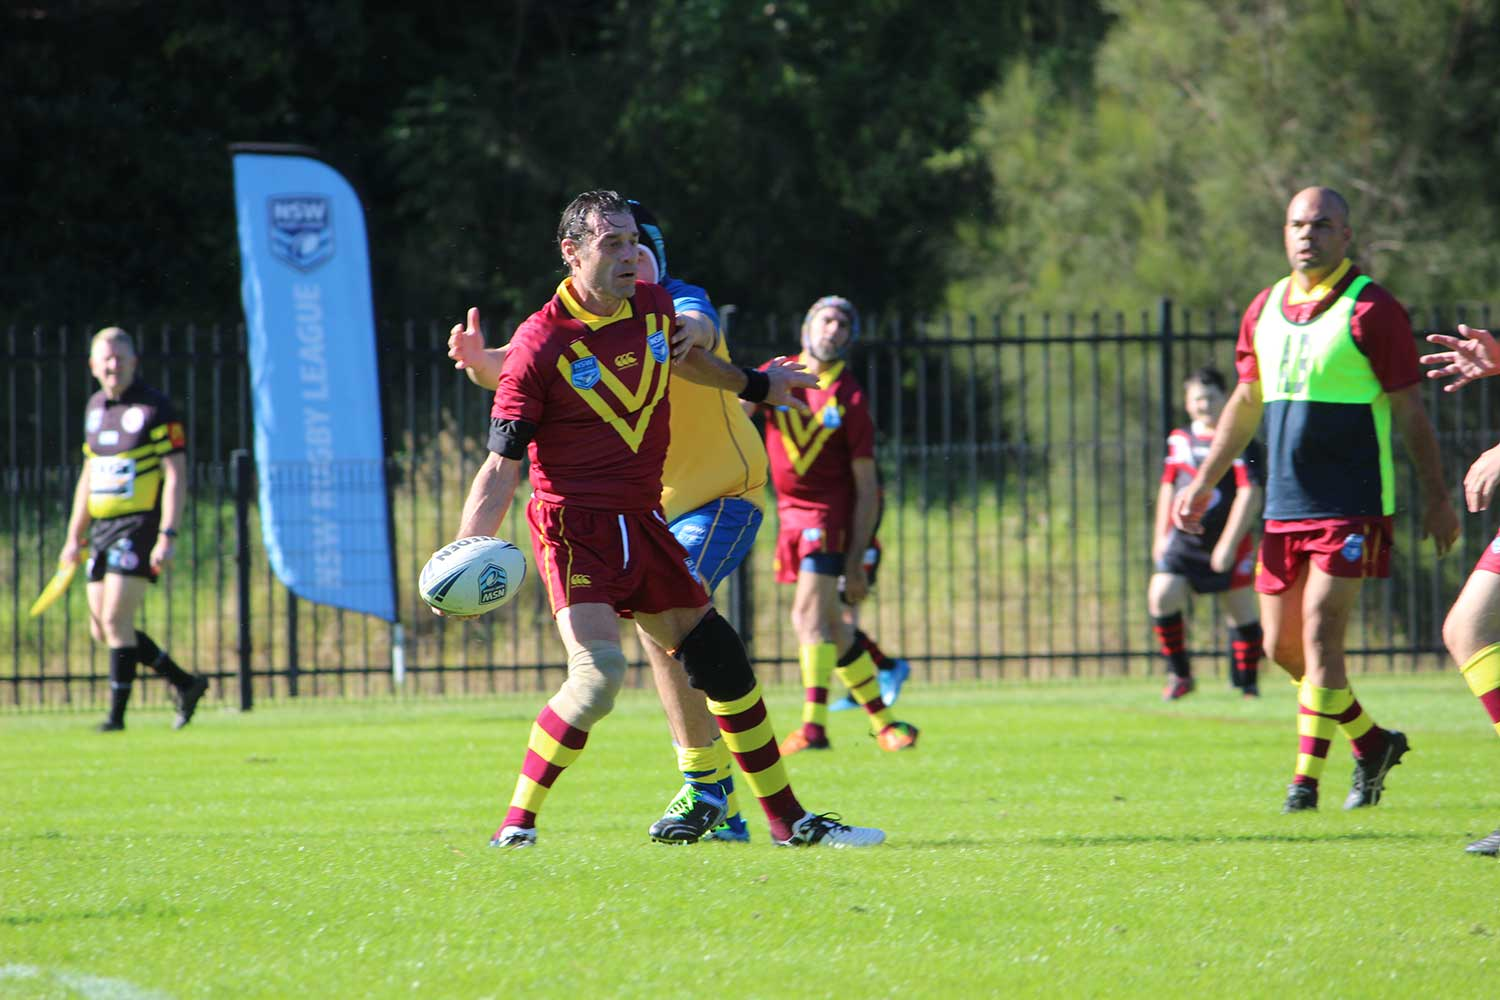 Country ball - NSWPDRLA Country vs City 16052021 - Collegians Figtree